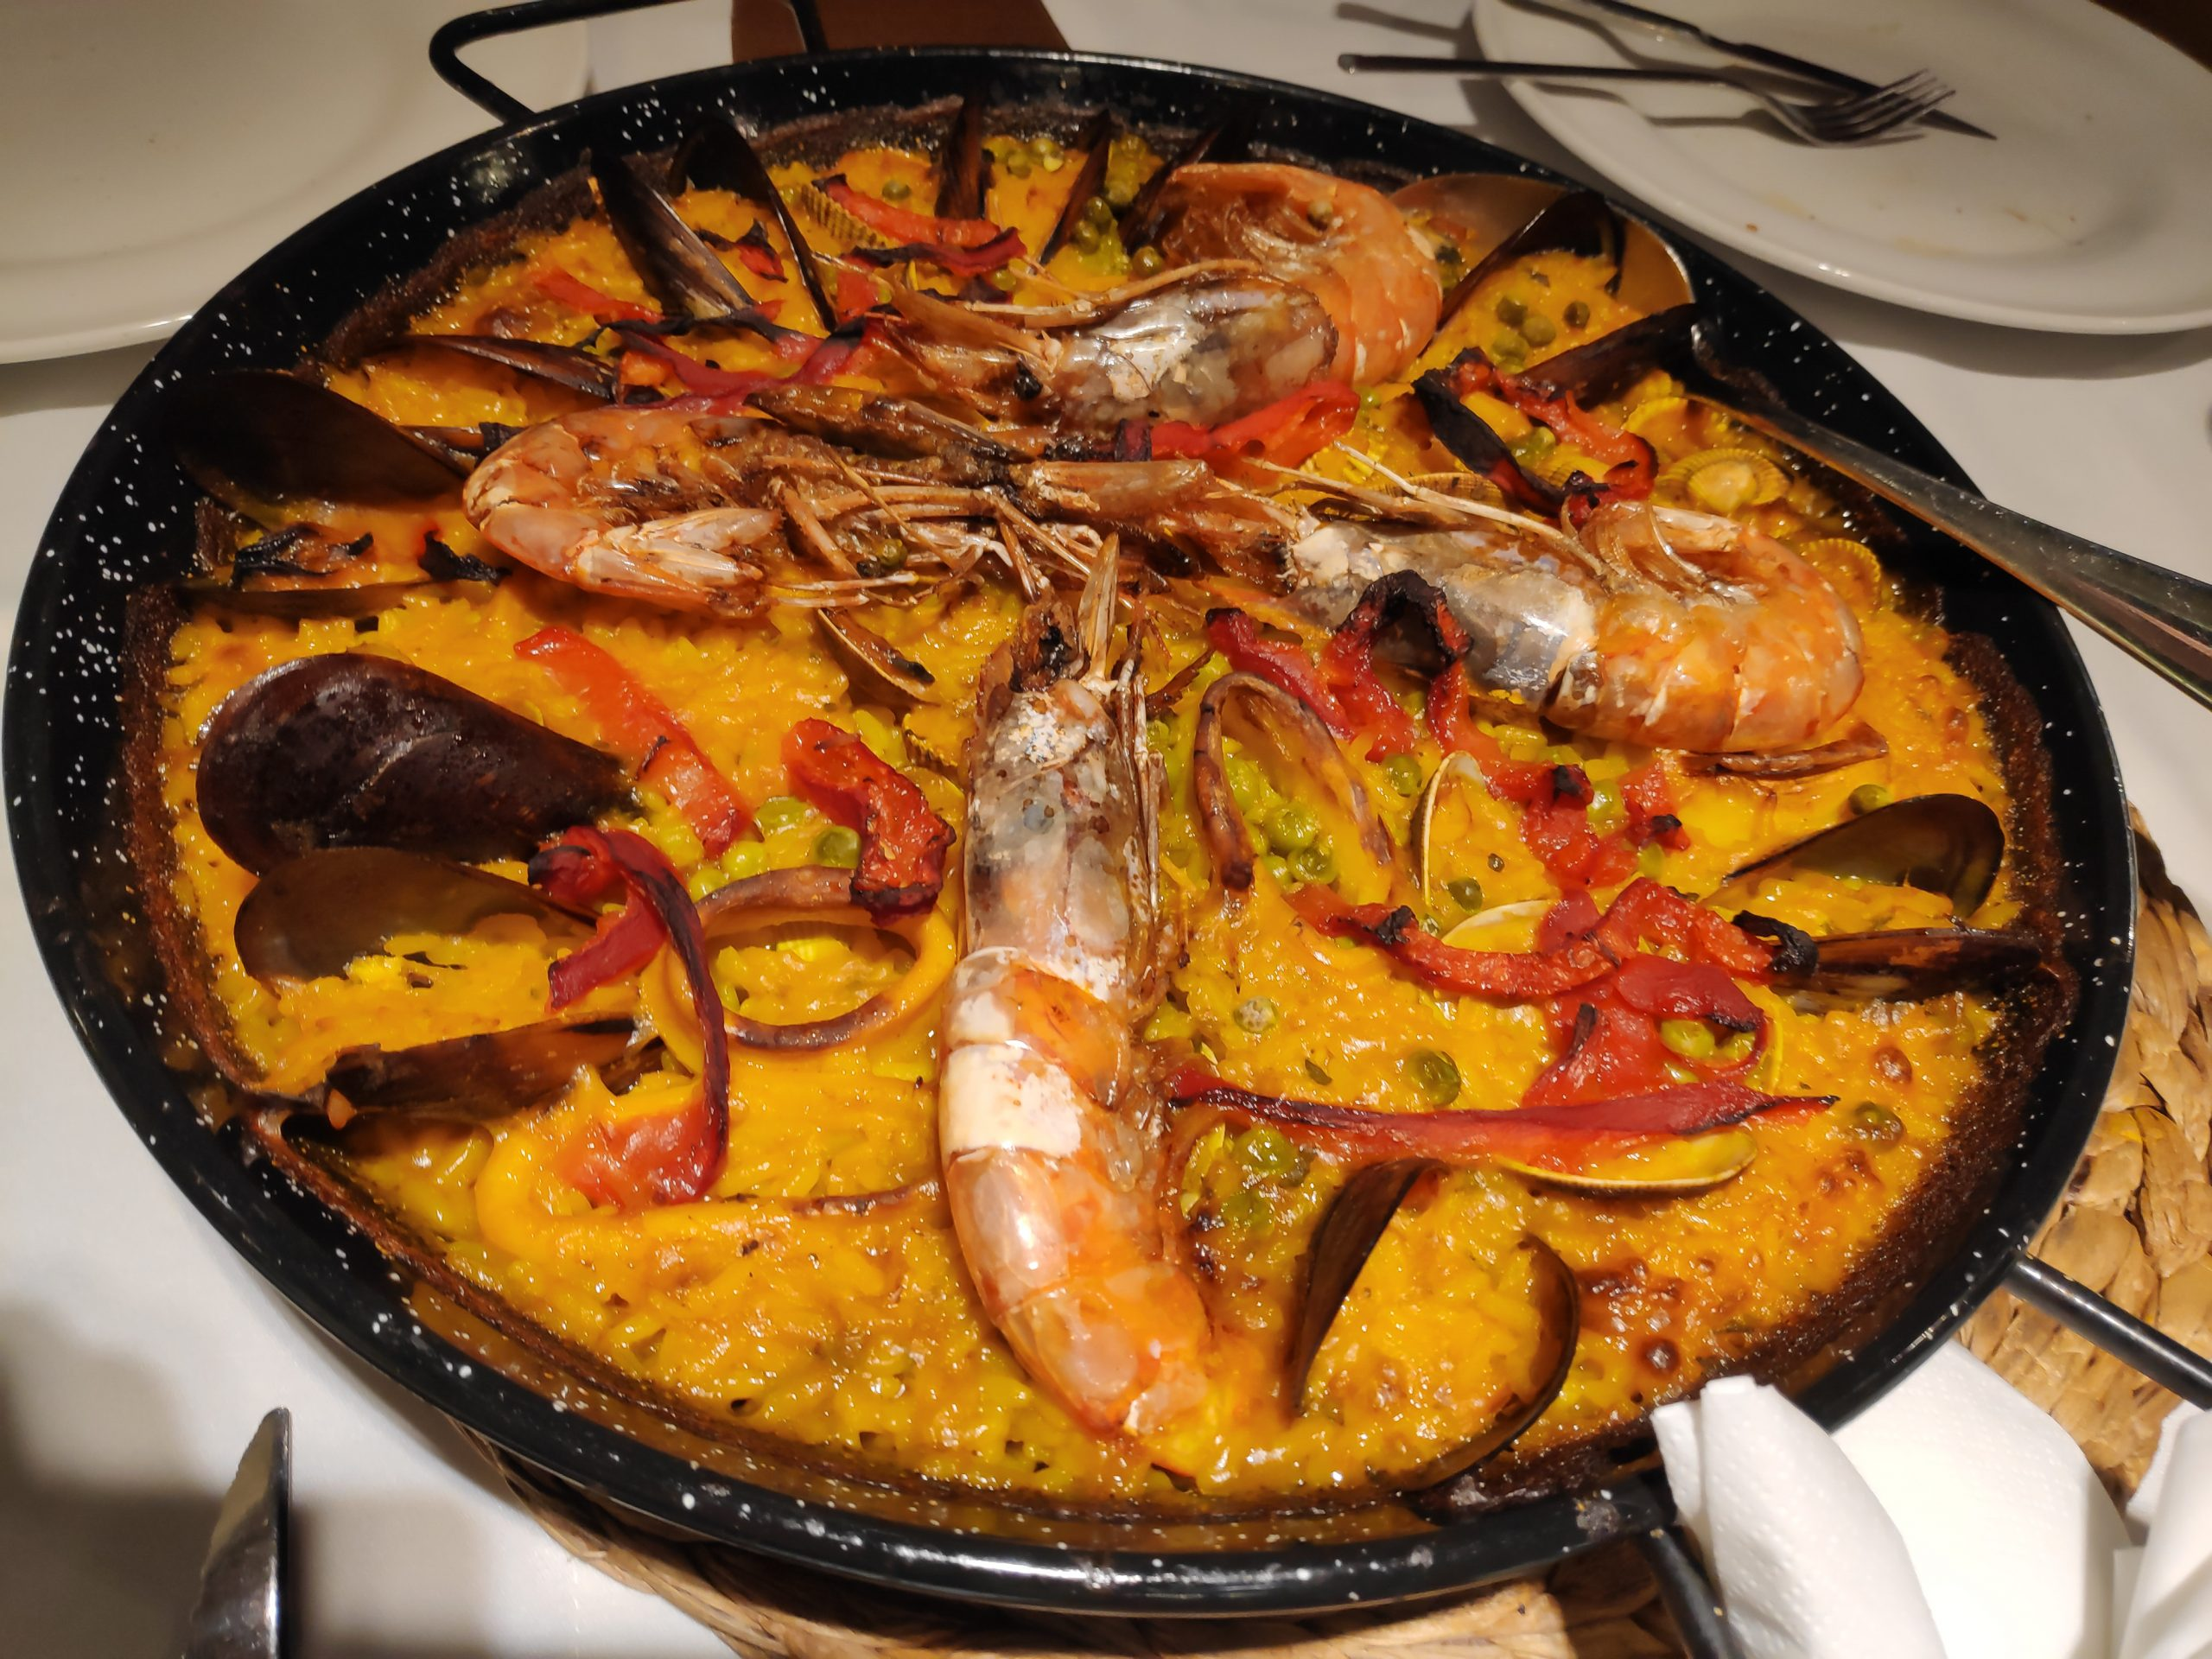 Infamous sea fruit paella, one of my favorite dishes in the world.